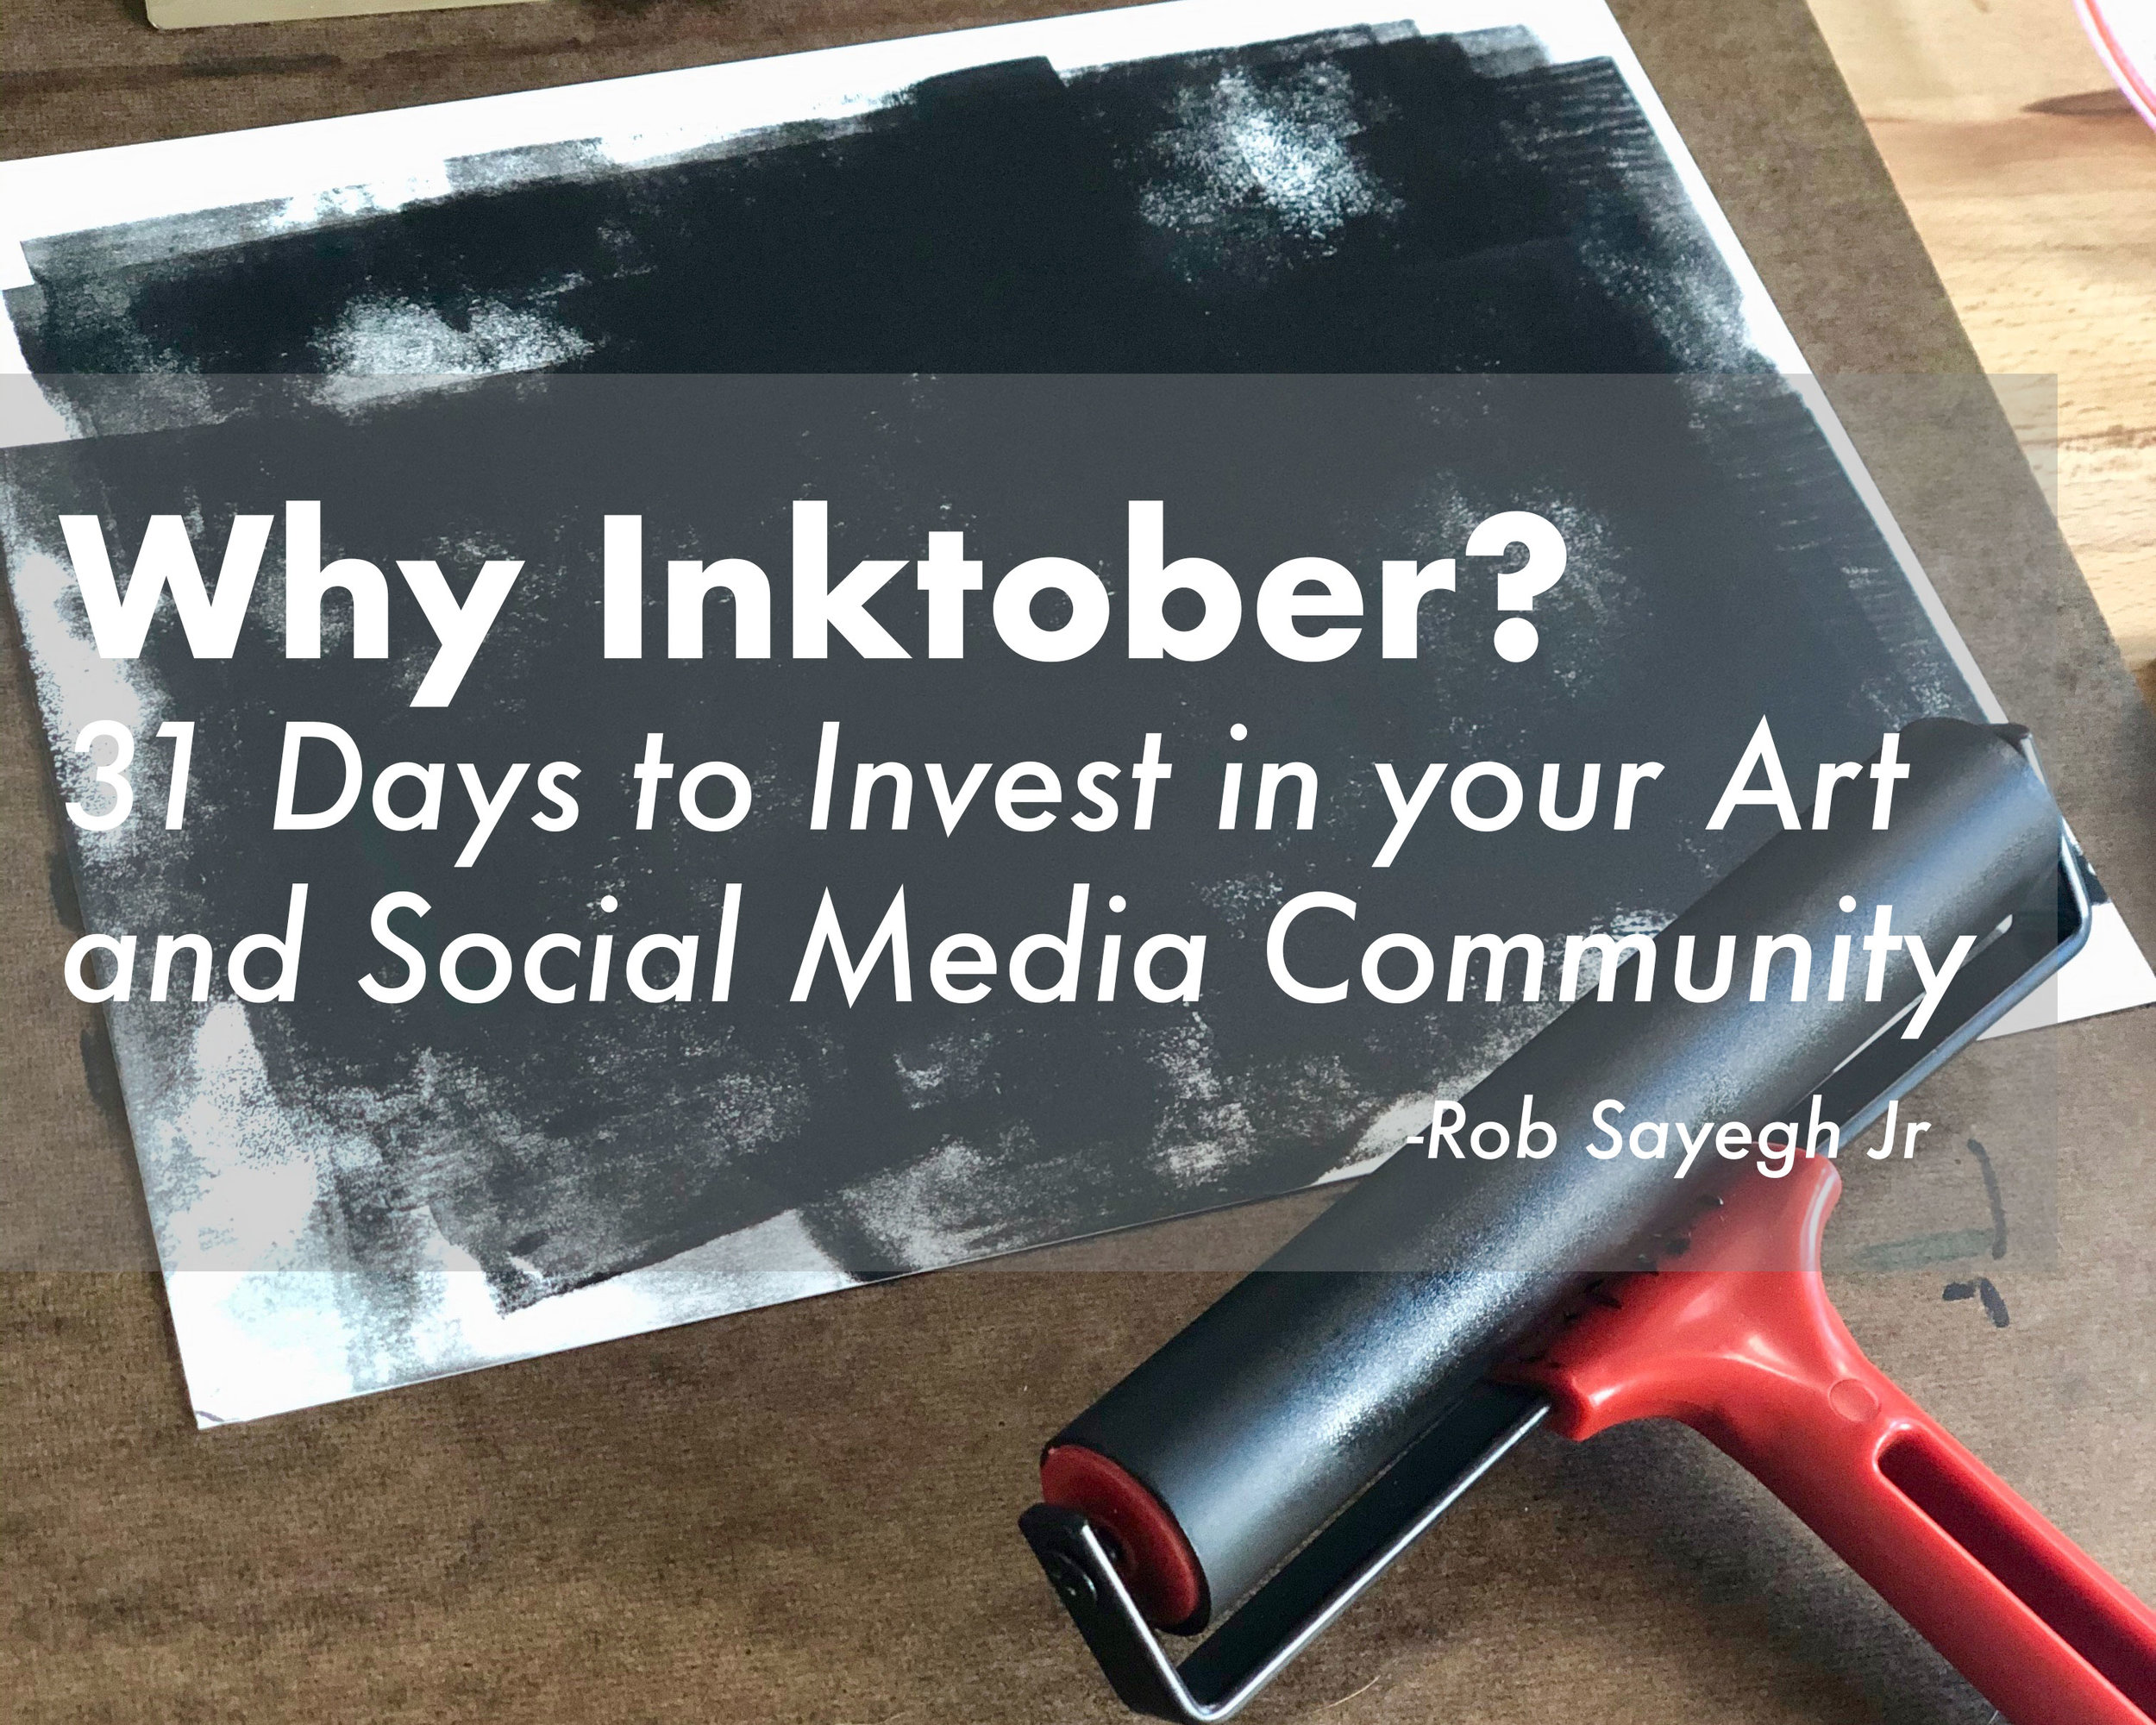 Why Inktober ? 31 Days to Invest in your Art and Social Media Community by Rob Sayegh Jr - Inktober - Illustration - Instagram - Art - Community - Social Media - Art Tips